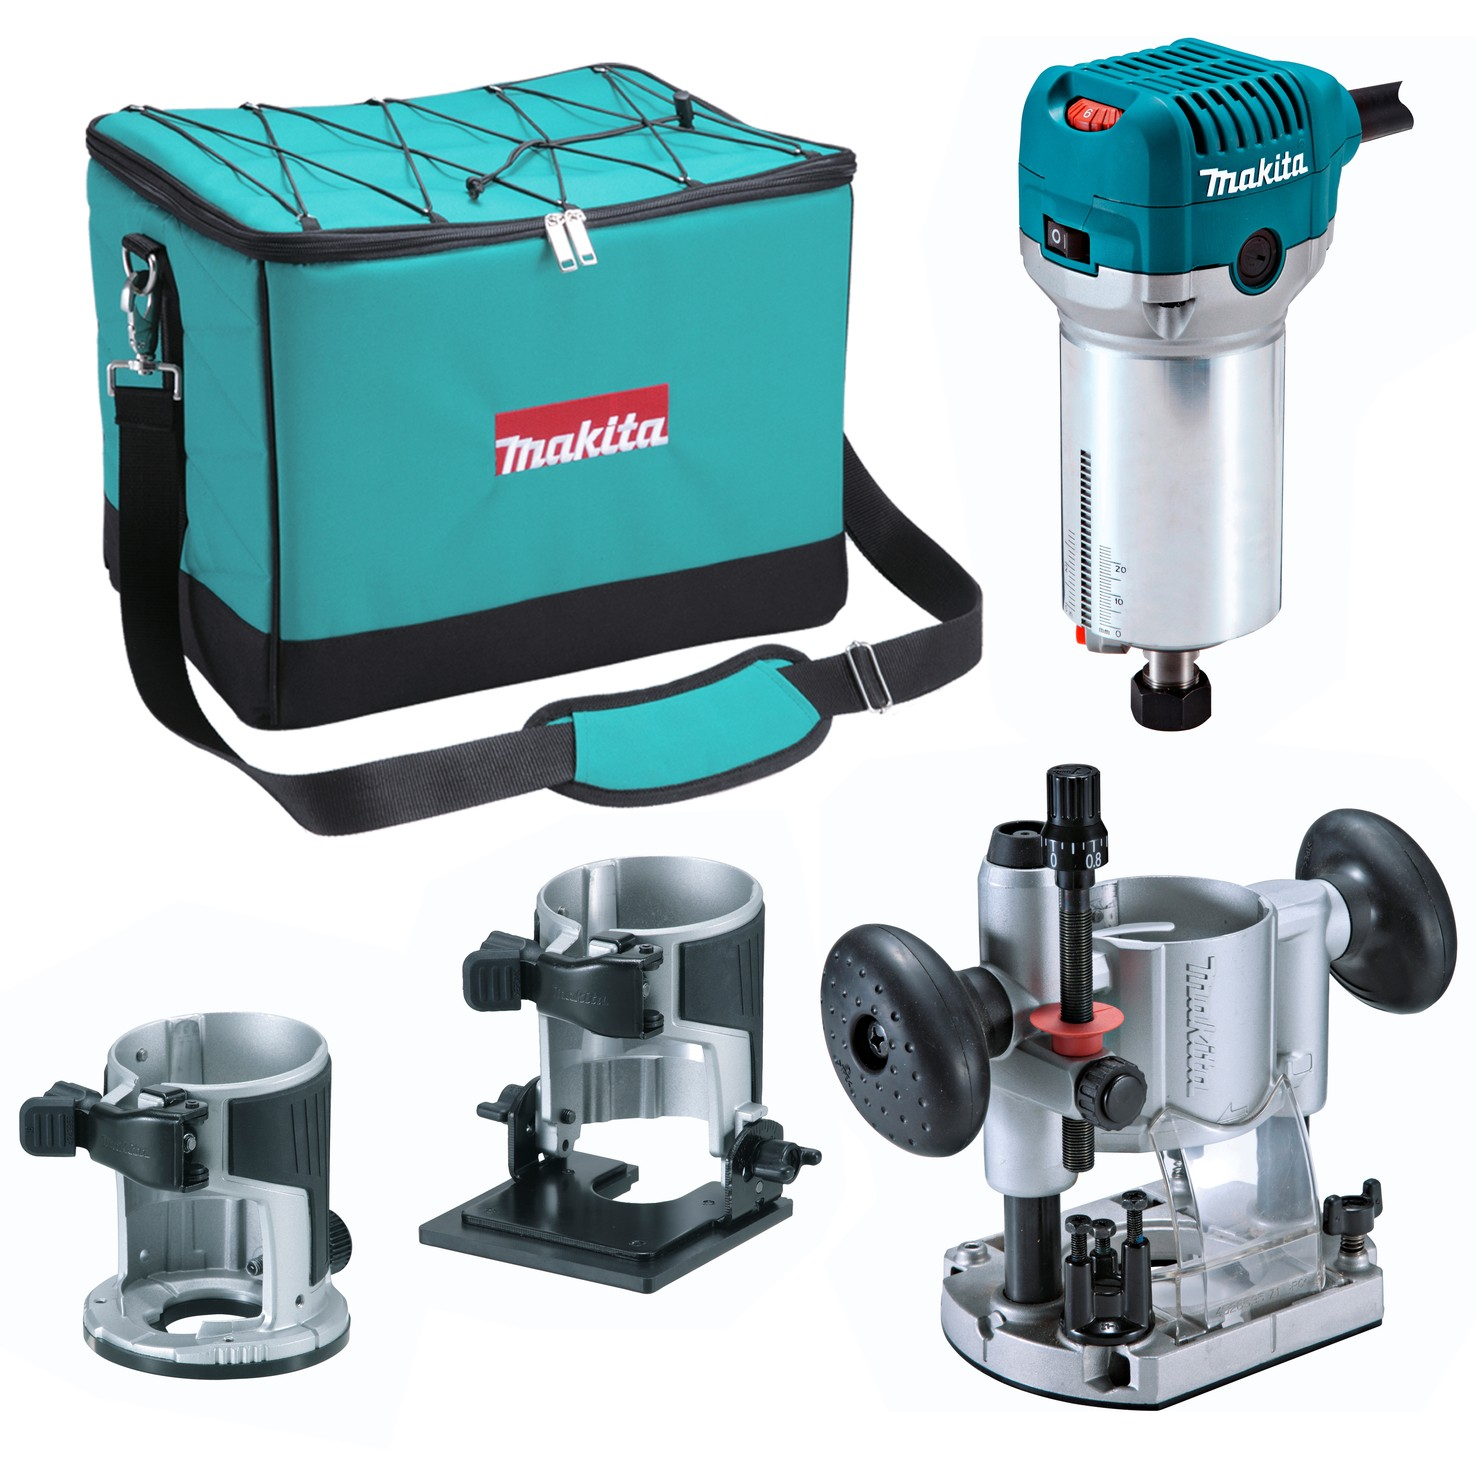 Makita RT0700CX2 Router / Trimmer with Bases 110v